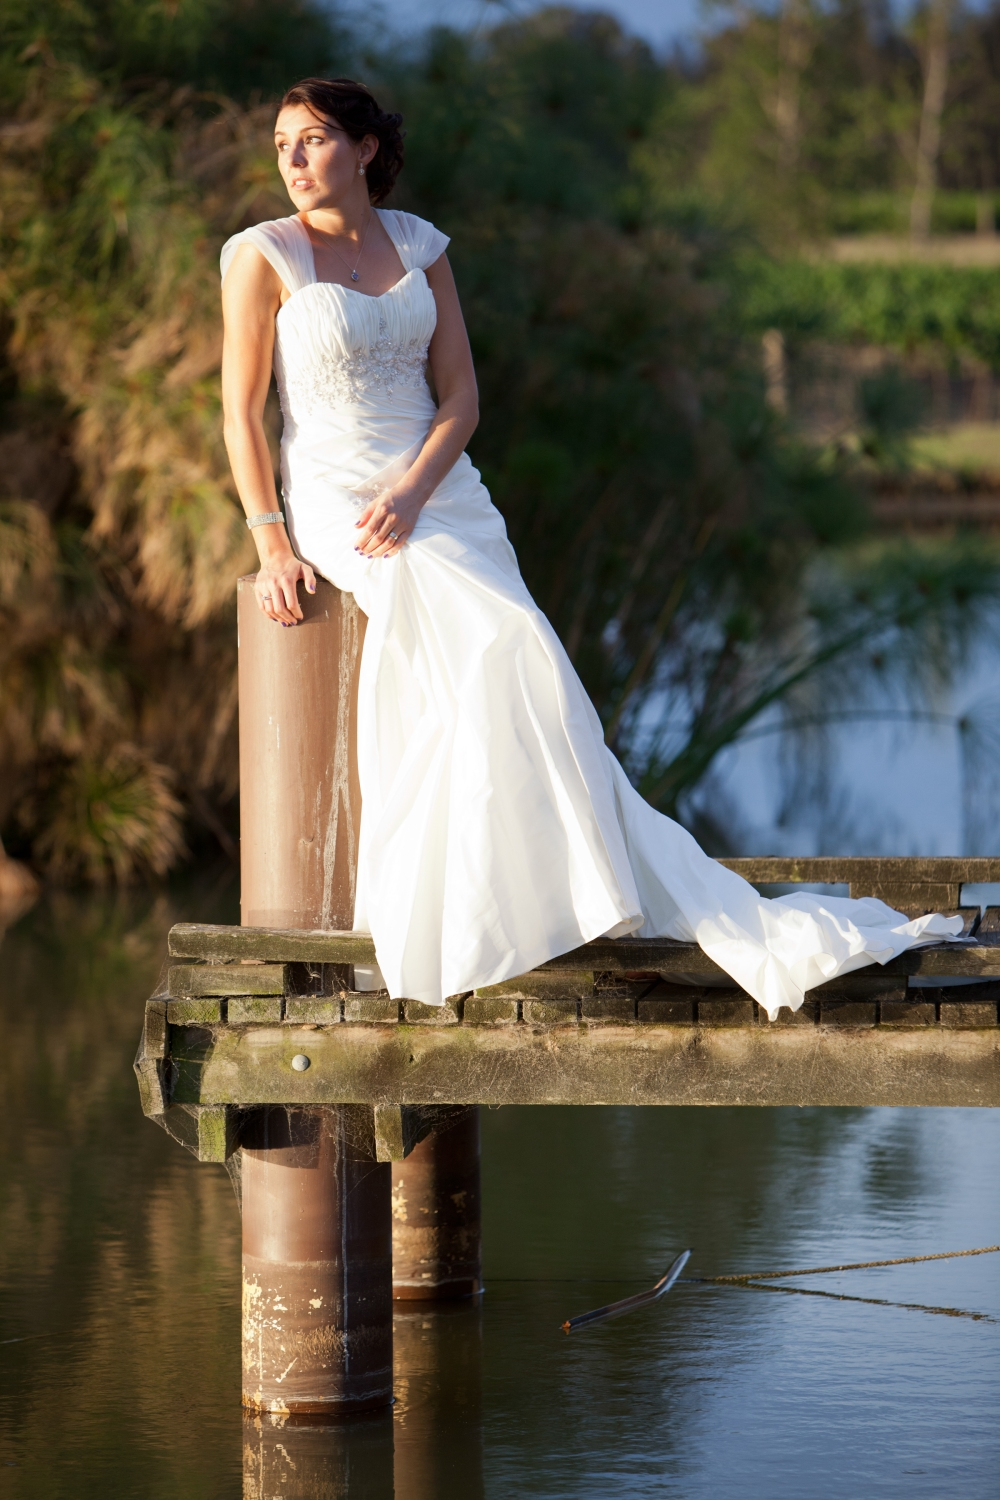 Wedding Photography - Kylie